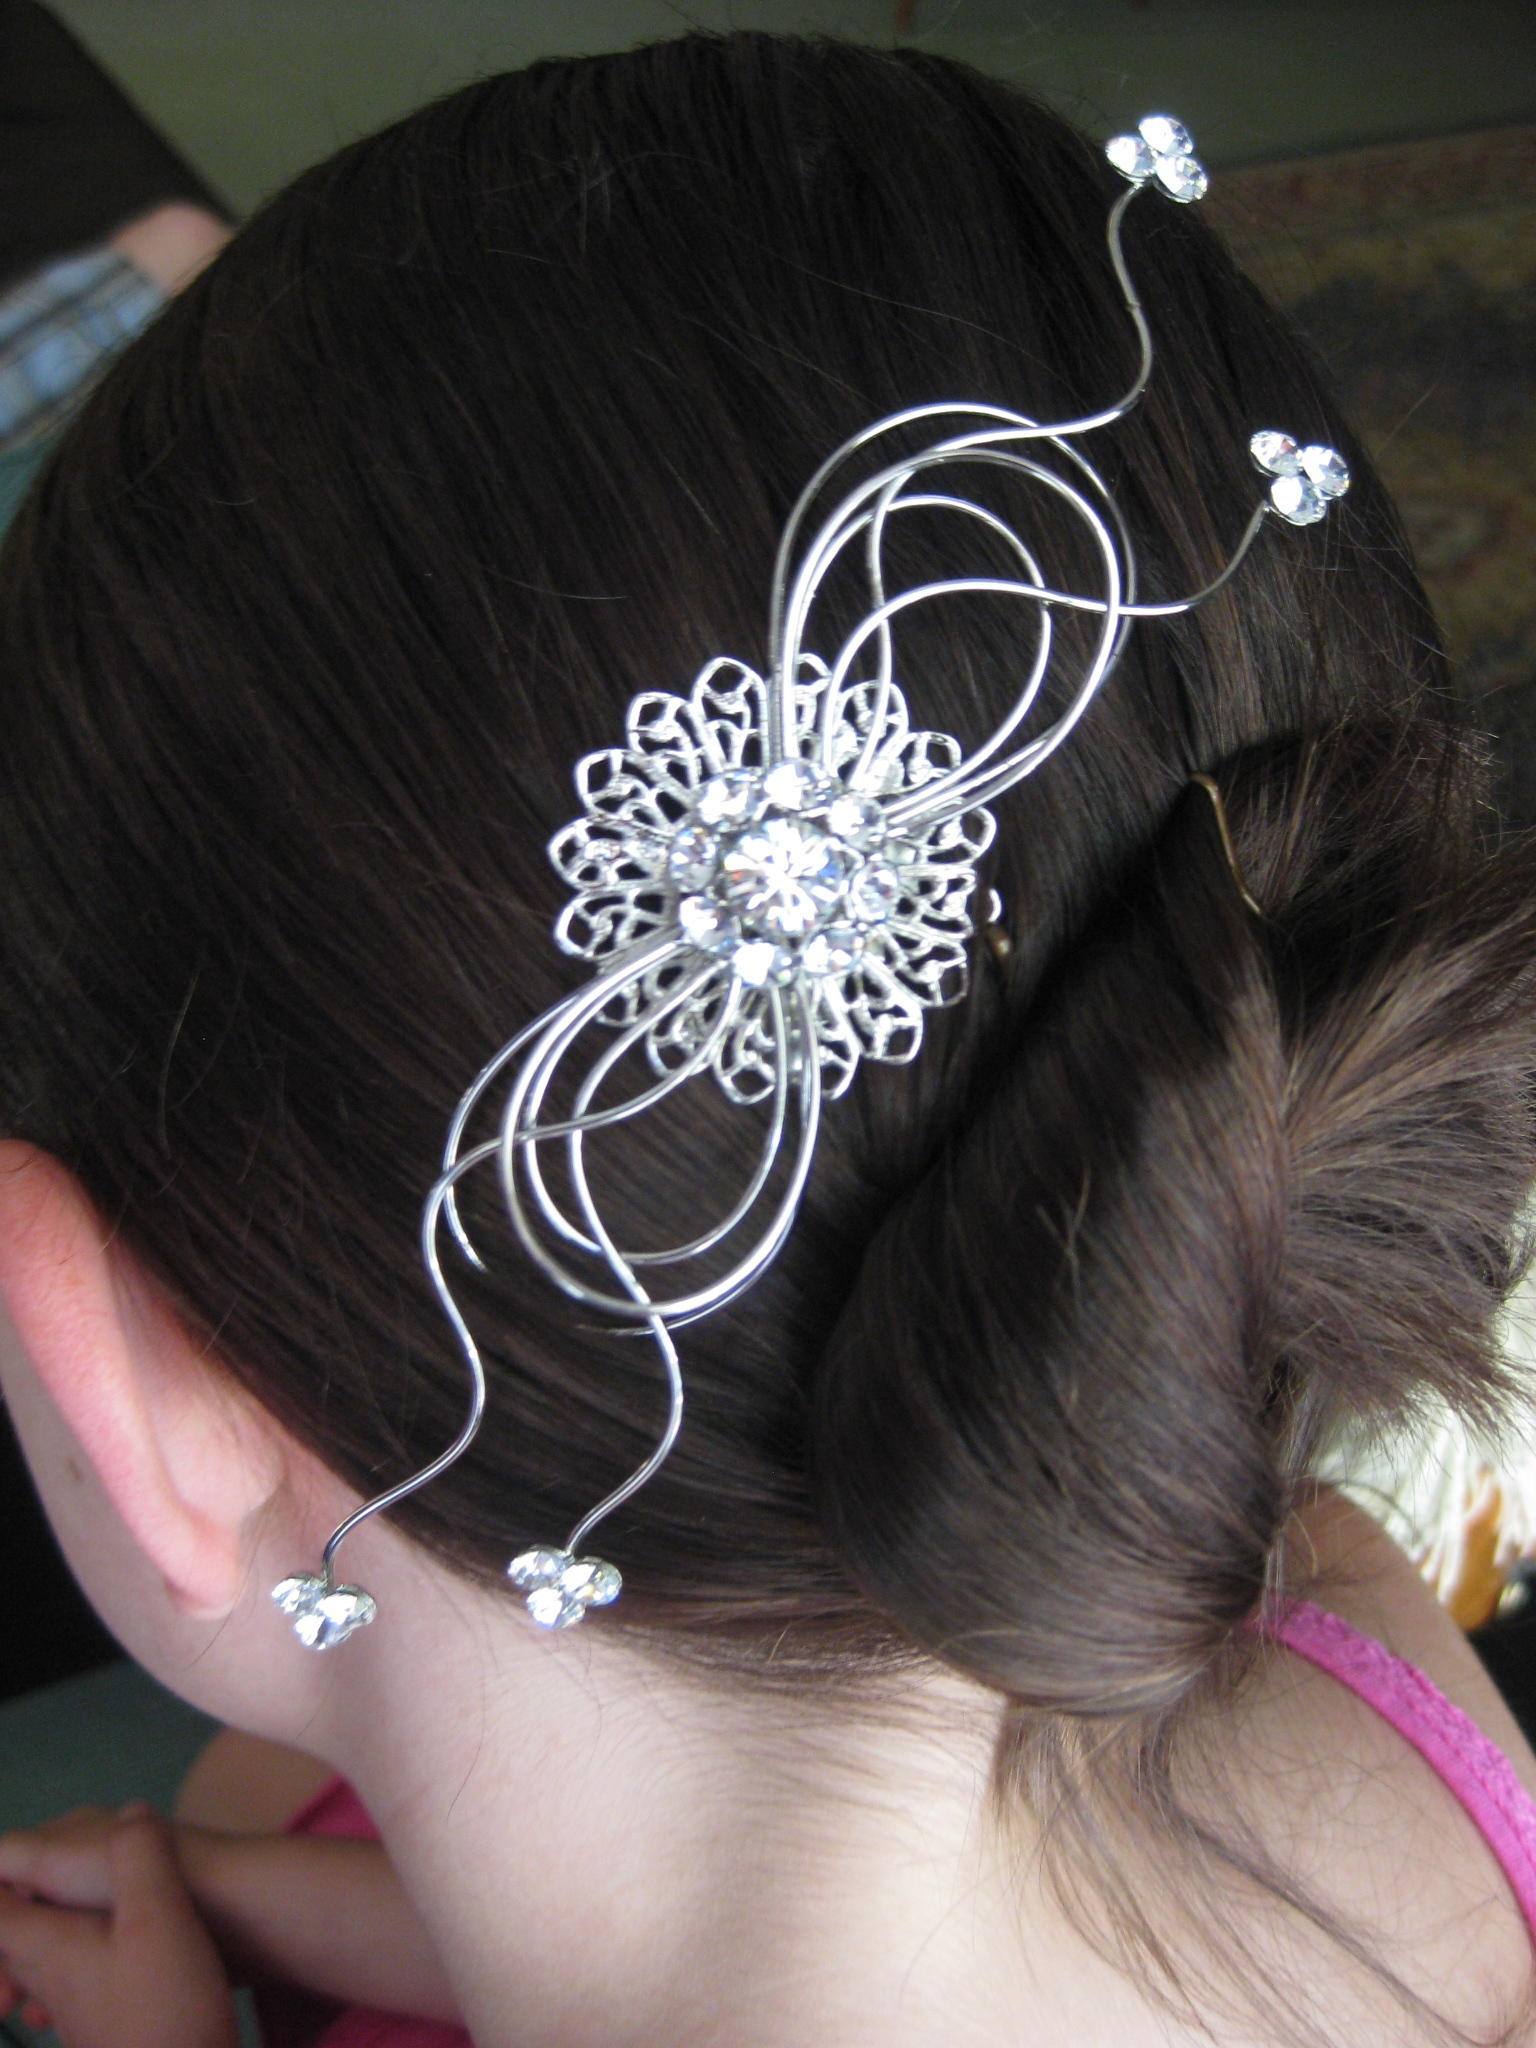 Beauty, silver, Comb, Hair, Swarovski, Accessory, Rhinestone, Lulu splendor, Rhodium